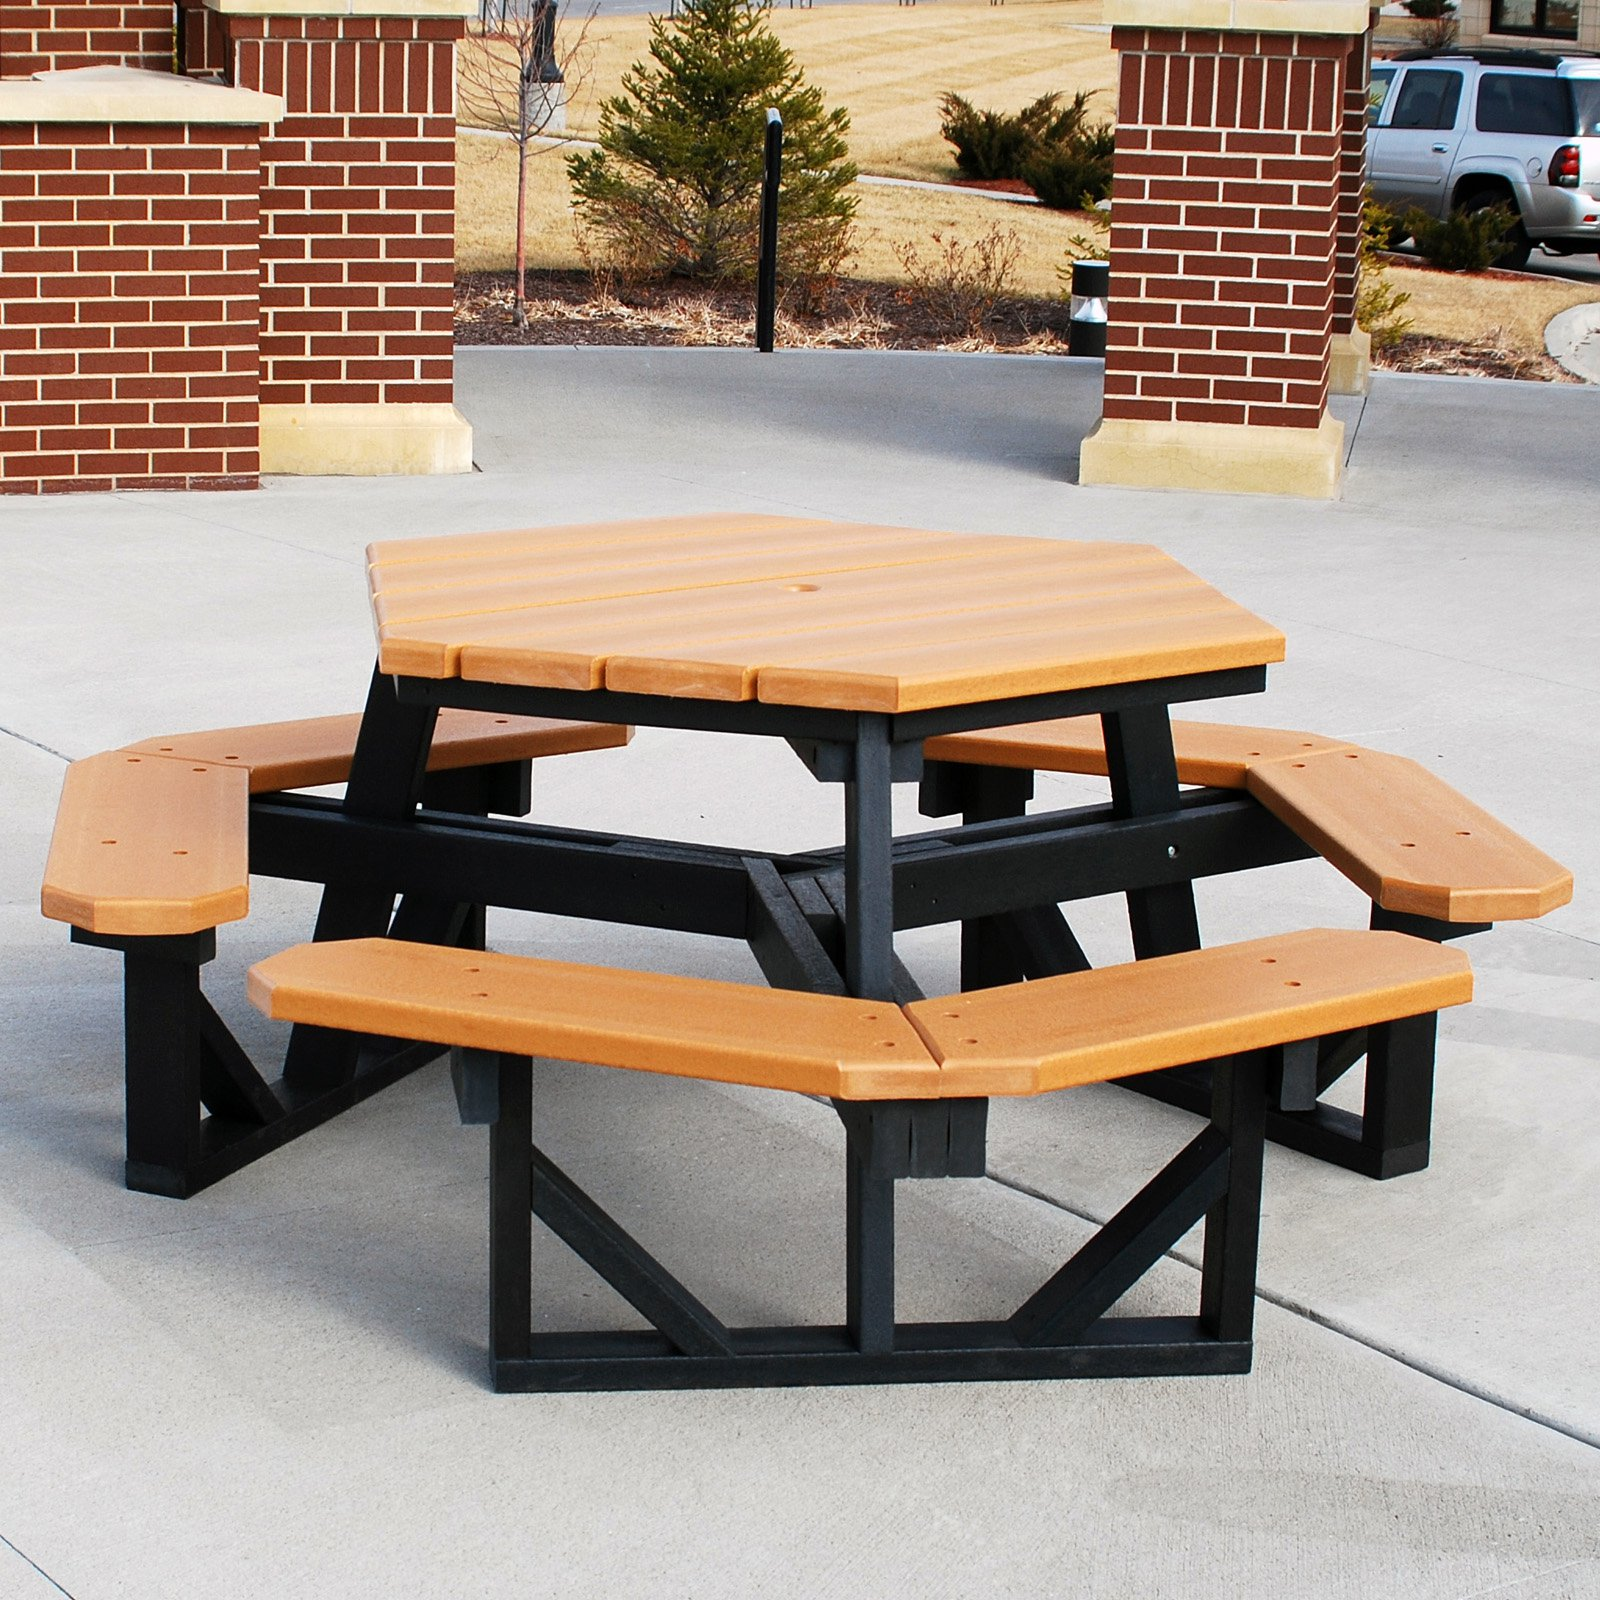 Jayhawk Plastics Hex Recycled Plastic Commercial Picnic Table - Recycled plastic hexagonal picnic table